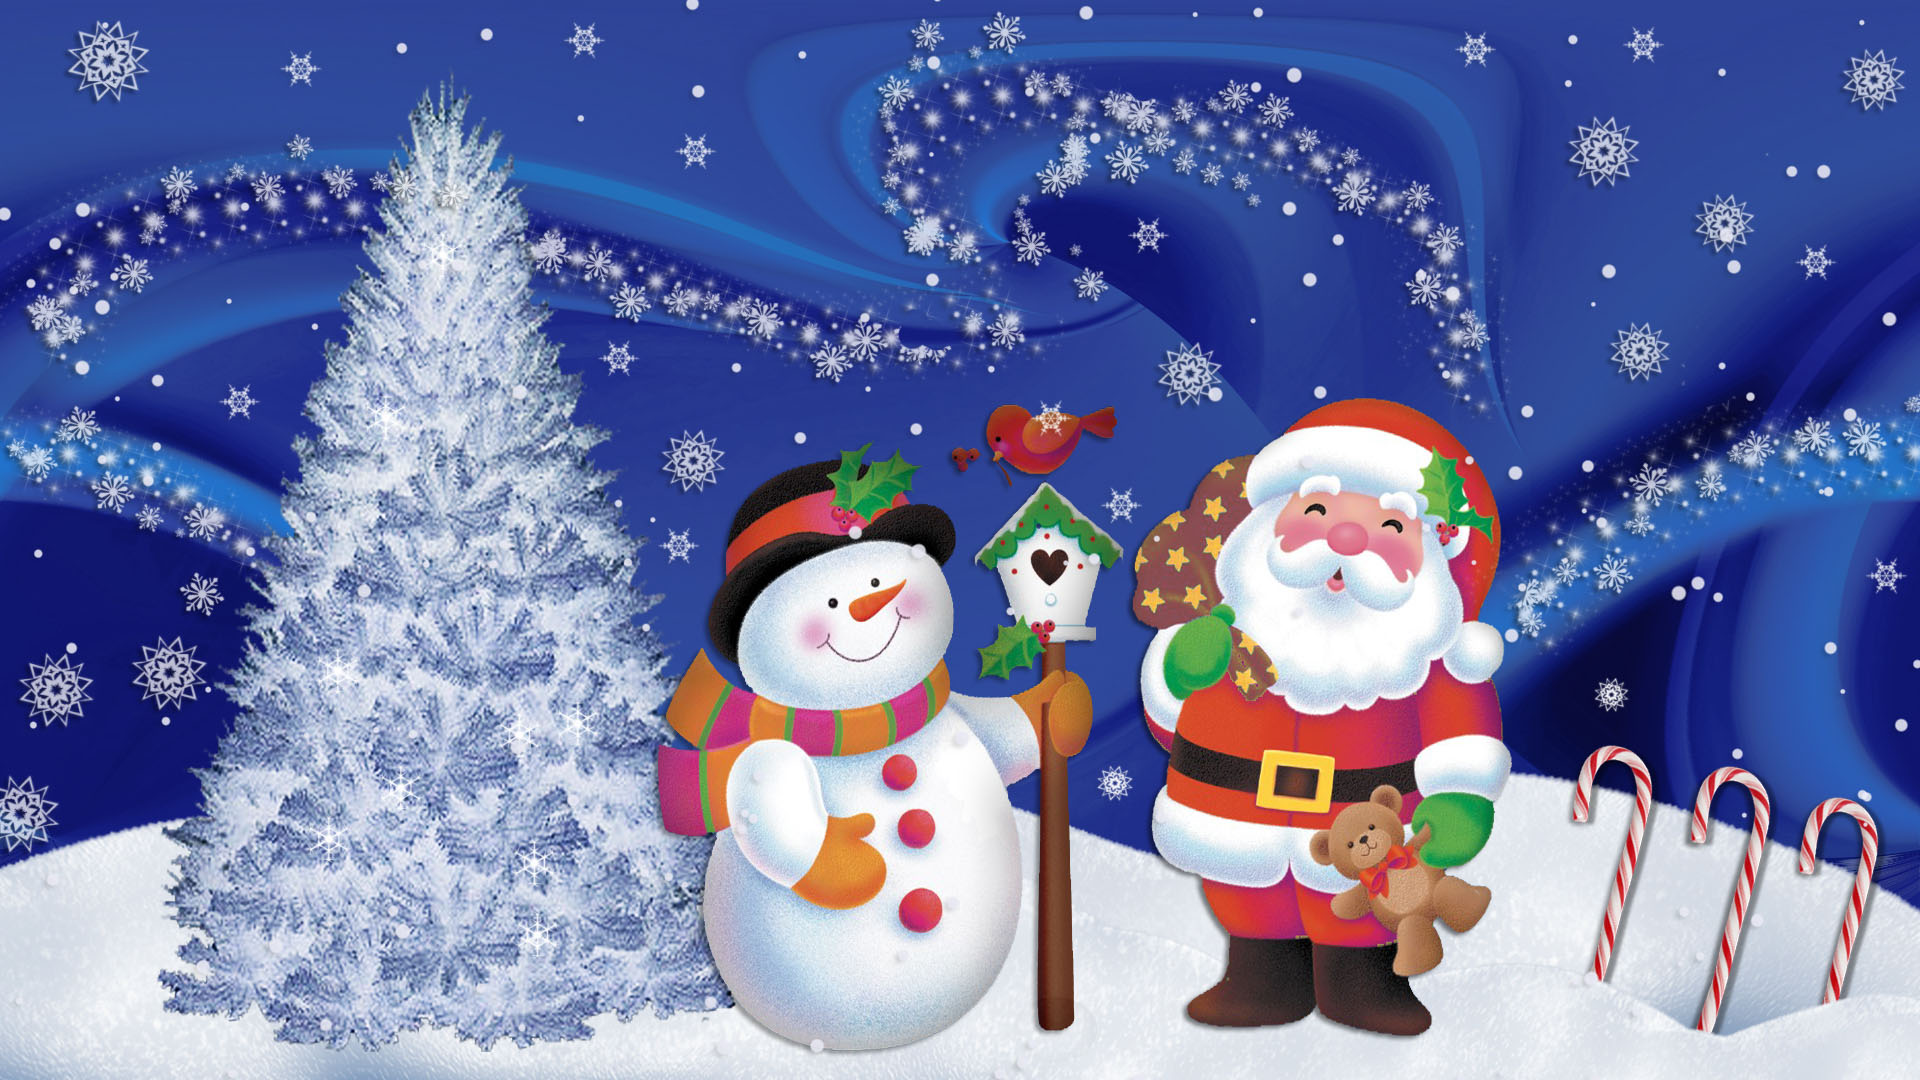 40 Christmas Wallpapers HD Quality 2012 Collection 1920x1080